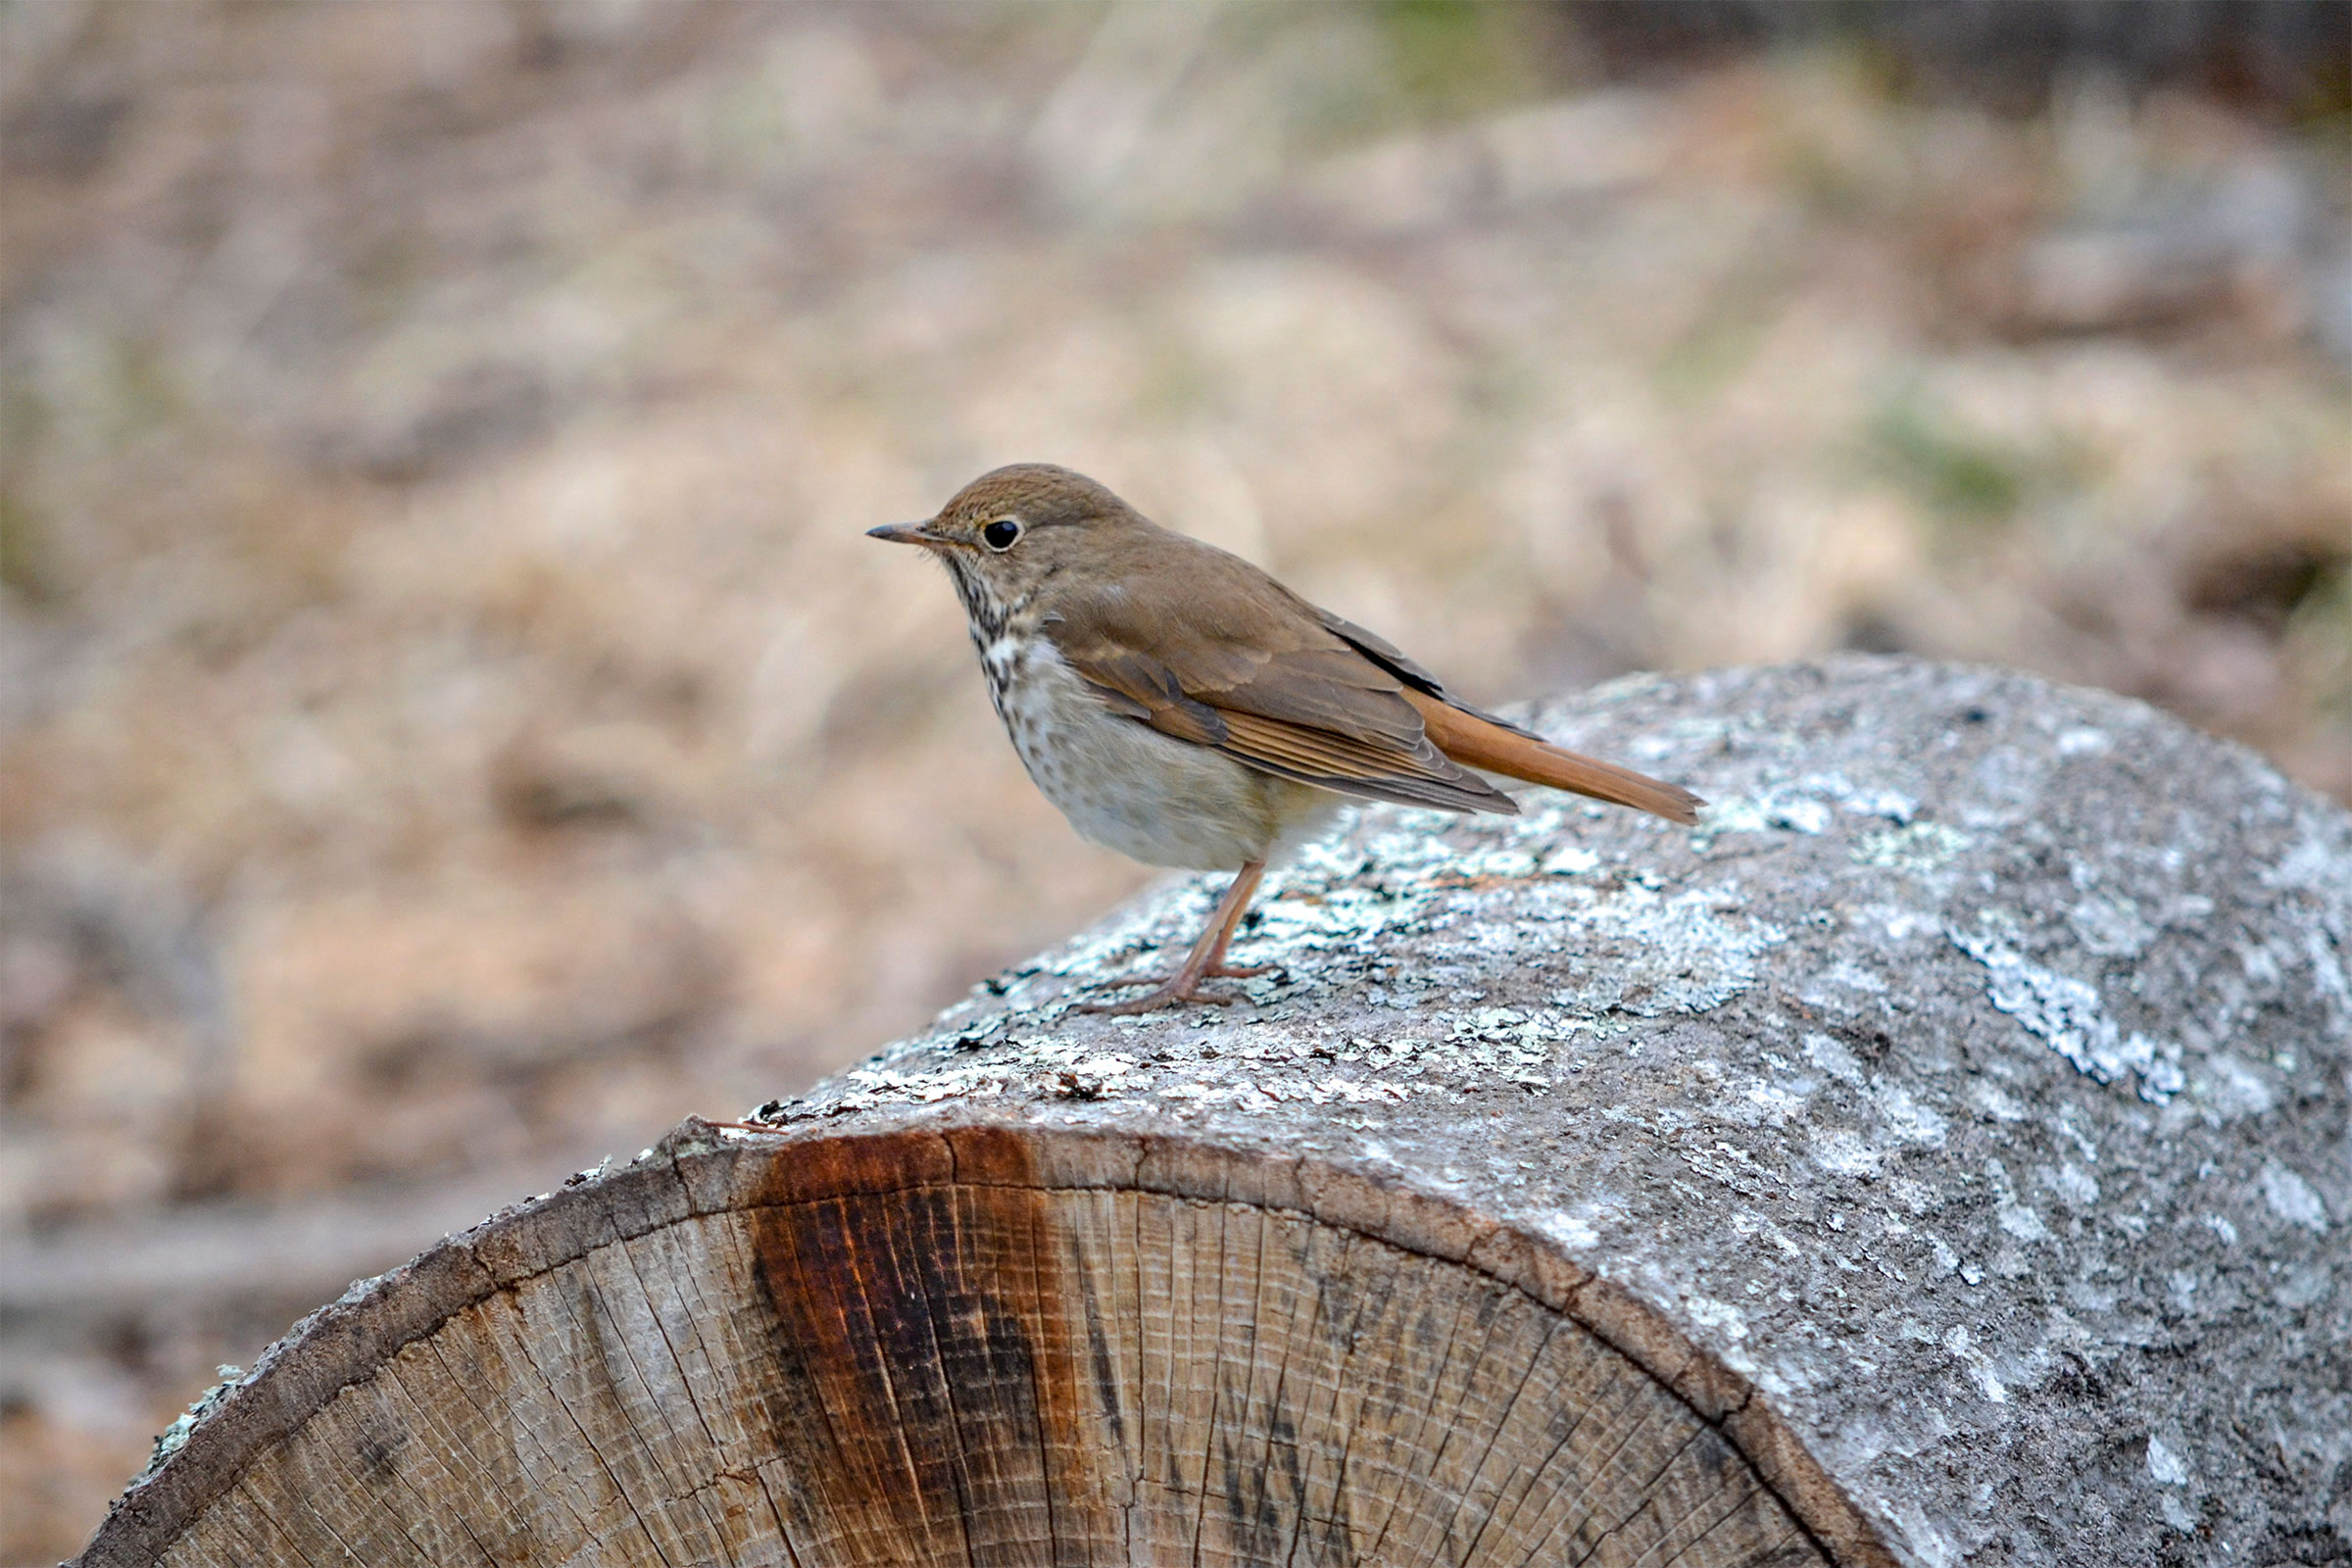 Hermit Thrush populations are significantly lower in Minnesota and Wisconsin forests where European earthworms are present. Jumping worms will likely exacerbate these effects. Laura Sprinkle/Great Backyard Bird Count